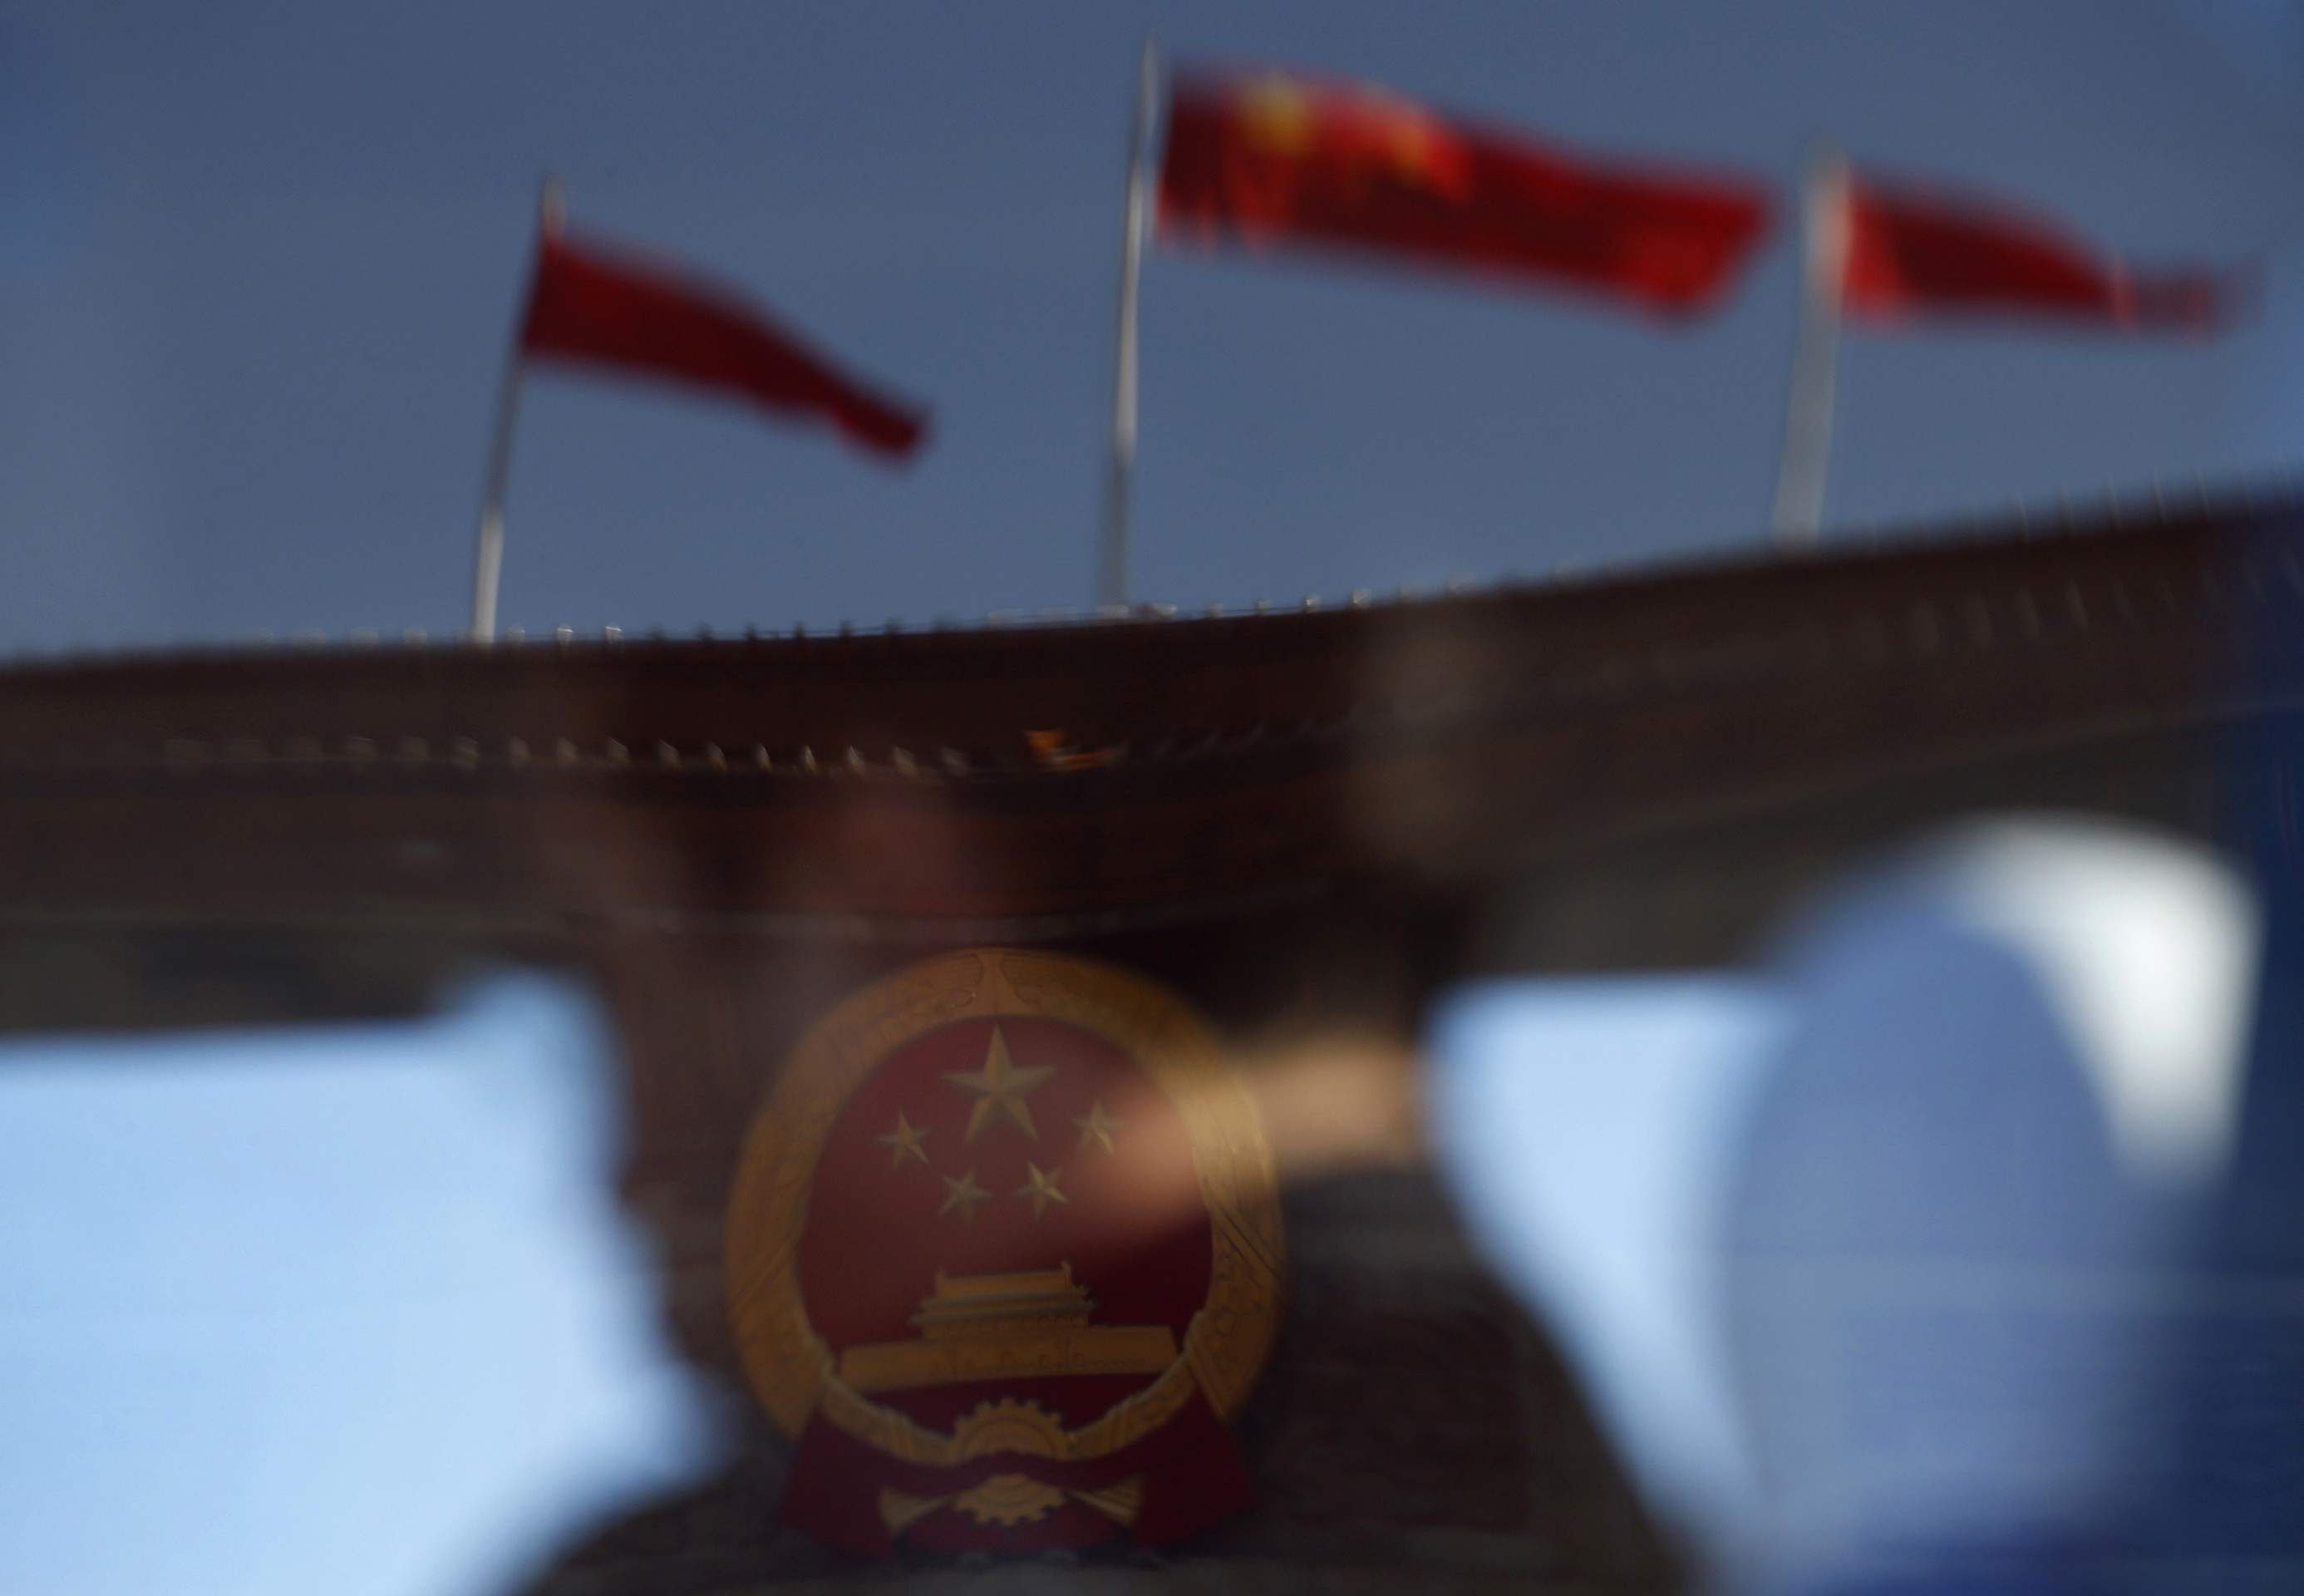 A delegate and the Great Hall of the People, the venue of the 18th National Congress of the Communist Party of China, are reflected in a window of a bus, on Tiananmen Square in Beijing, November 14, 2012.